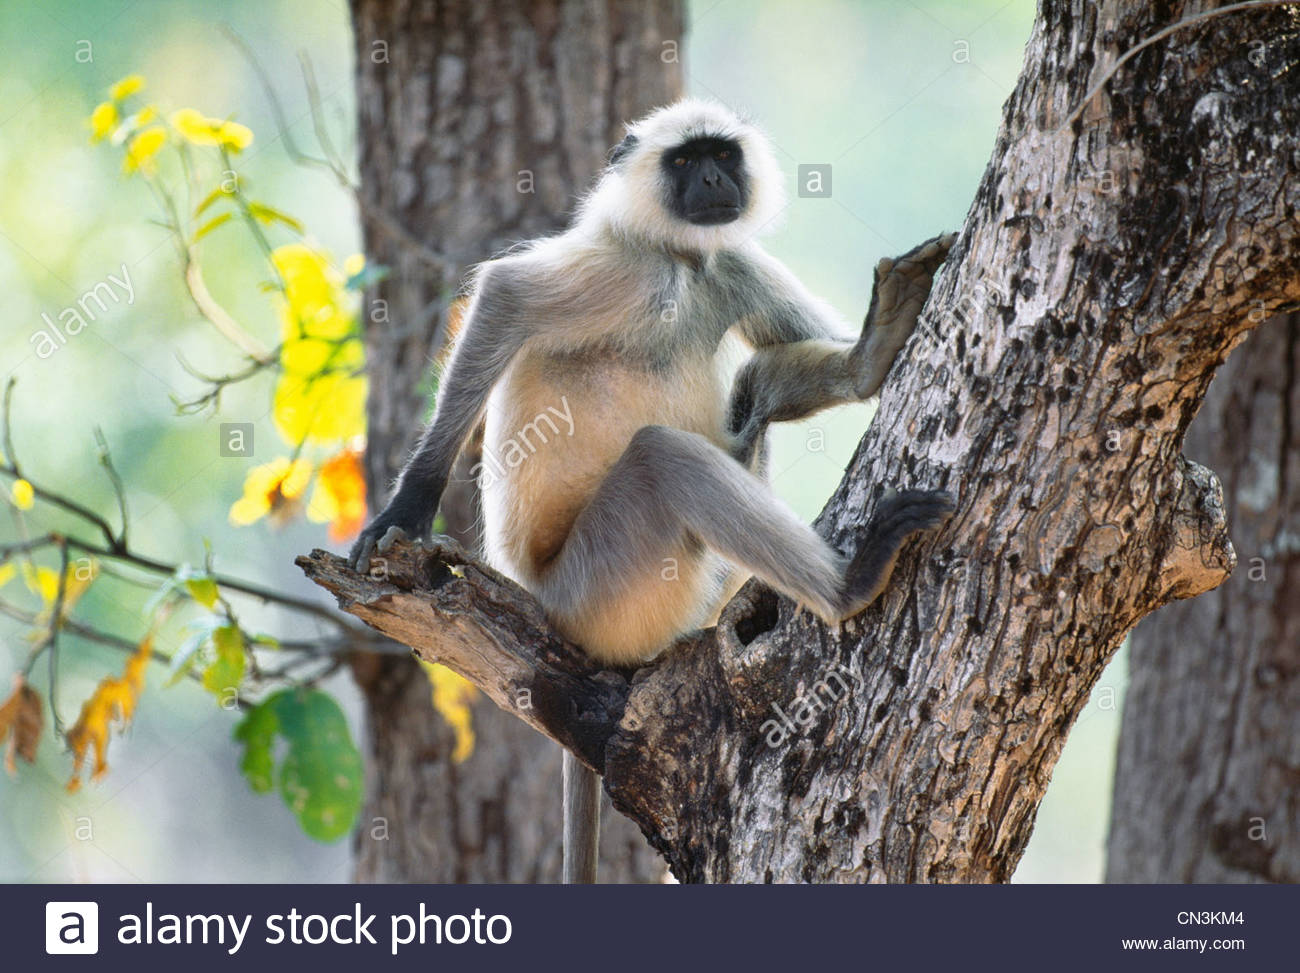 Hanuman langur, Ranthambhore National Park, India Immagini Stock